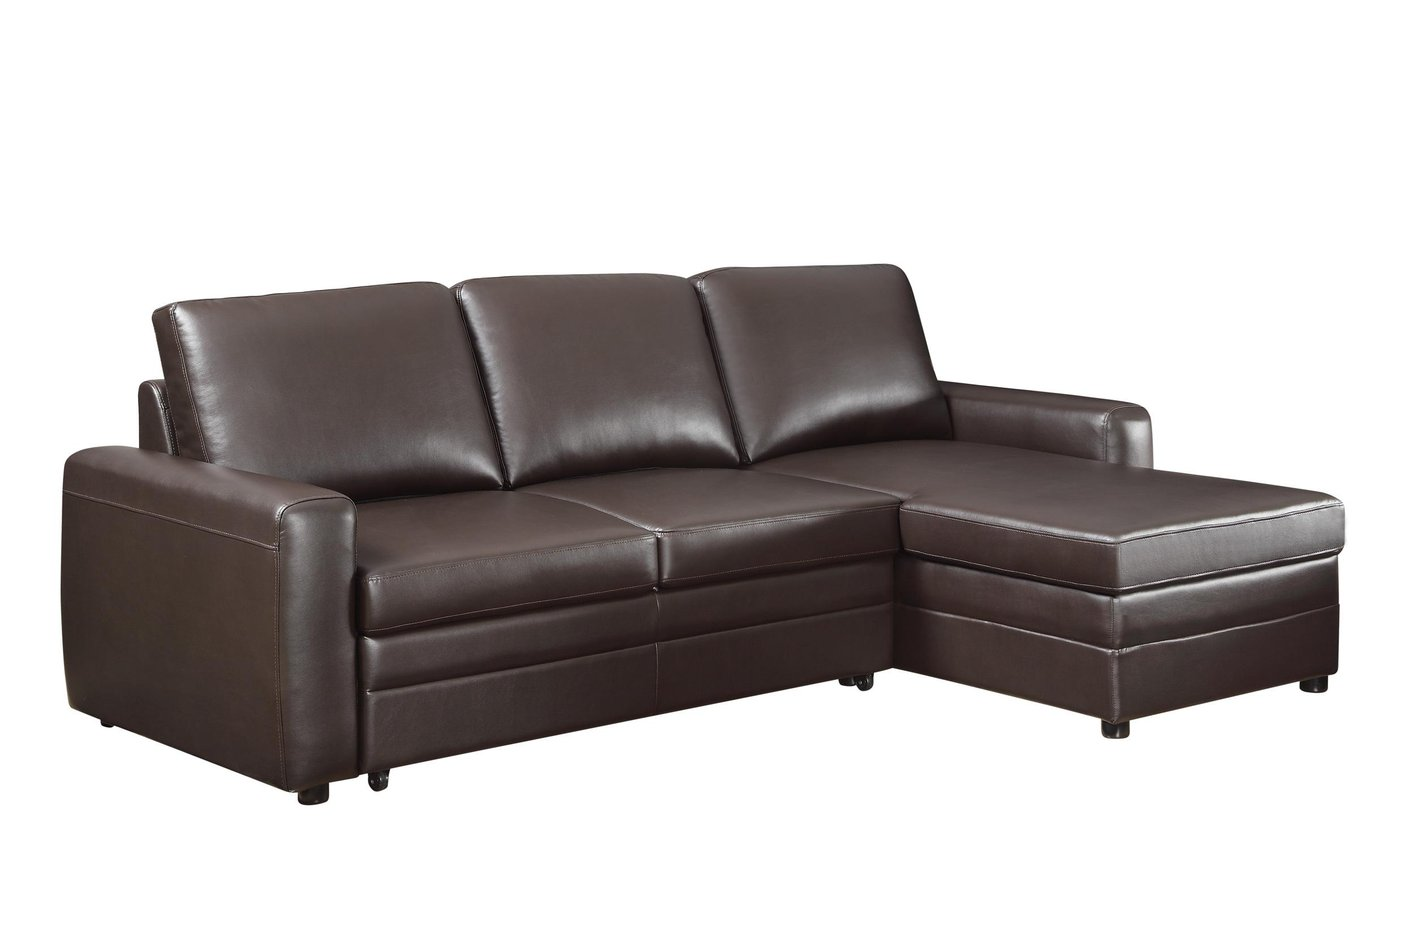 Coaster gus 503870 brown leather sectional sofa steal a for Leather sectional sofa